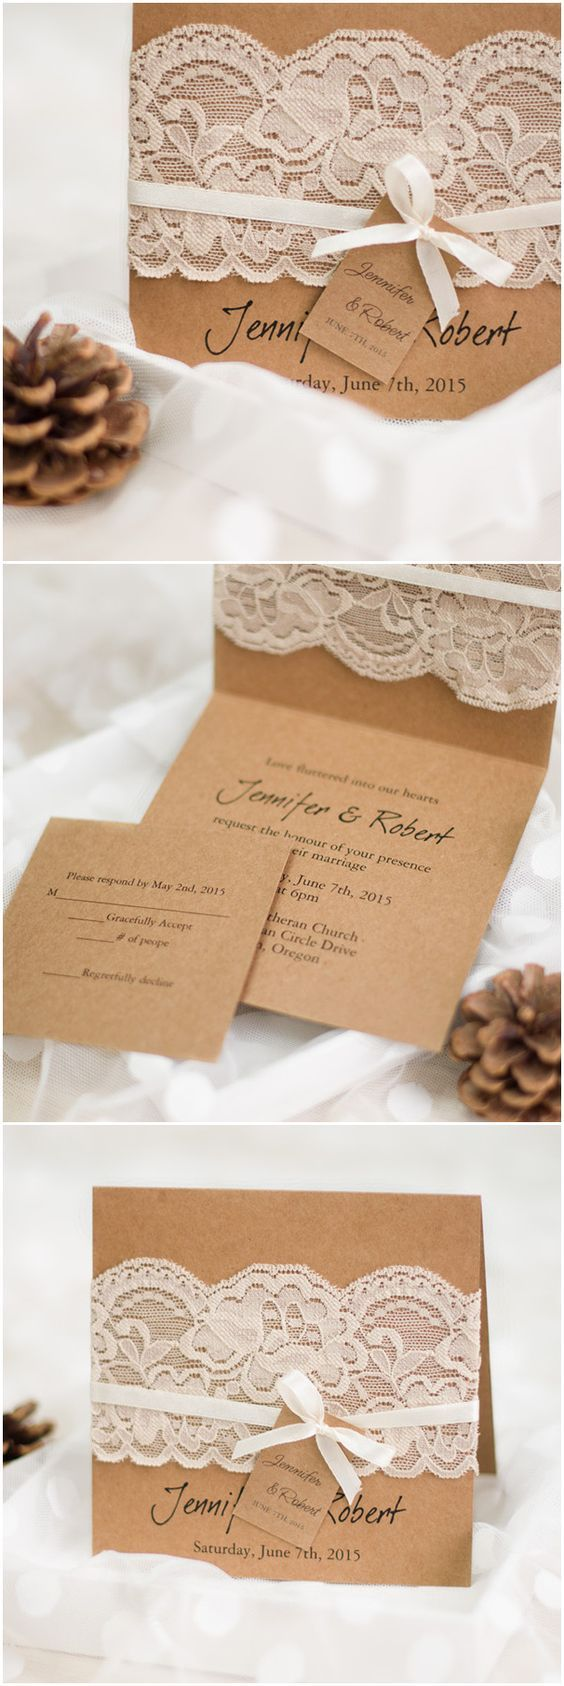 inexpensive wedding invitations with response cards%0A graceful vintage rustic folded wedding invitations lace EWLS